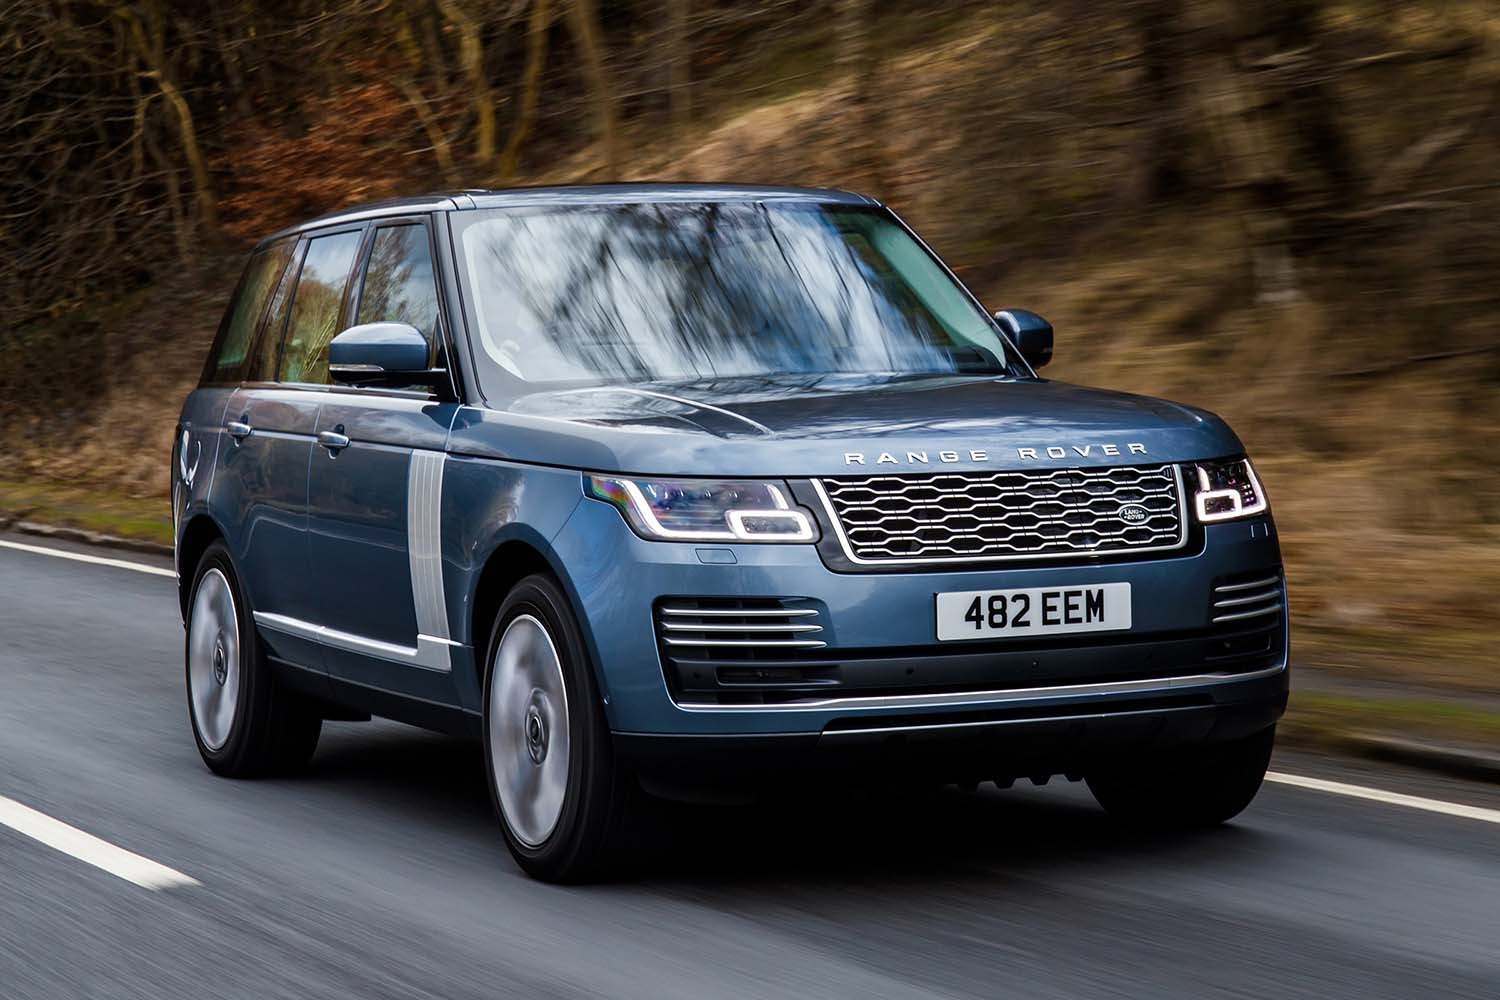 Top 10 Sustainable Luxury Cars for 2020: Range Rover PHEV